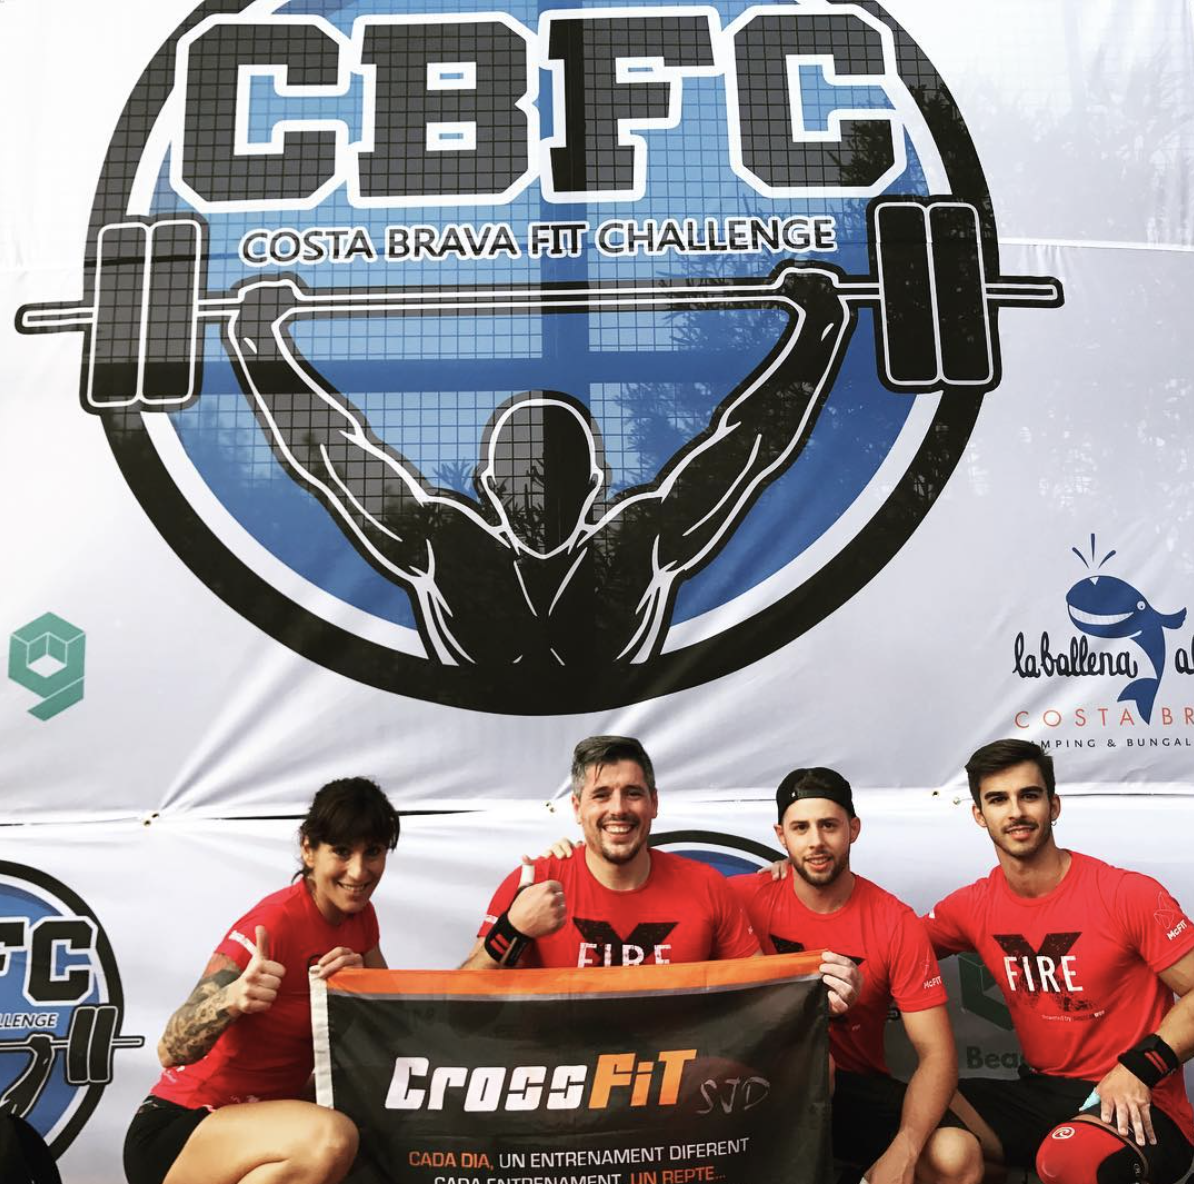 crossfit sjd costa brava fit challenge 02